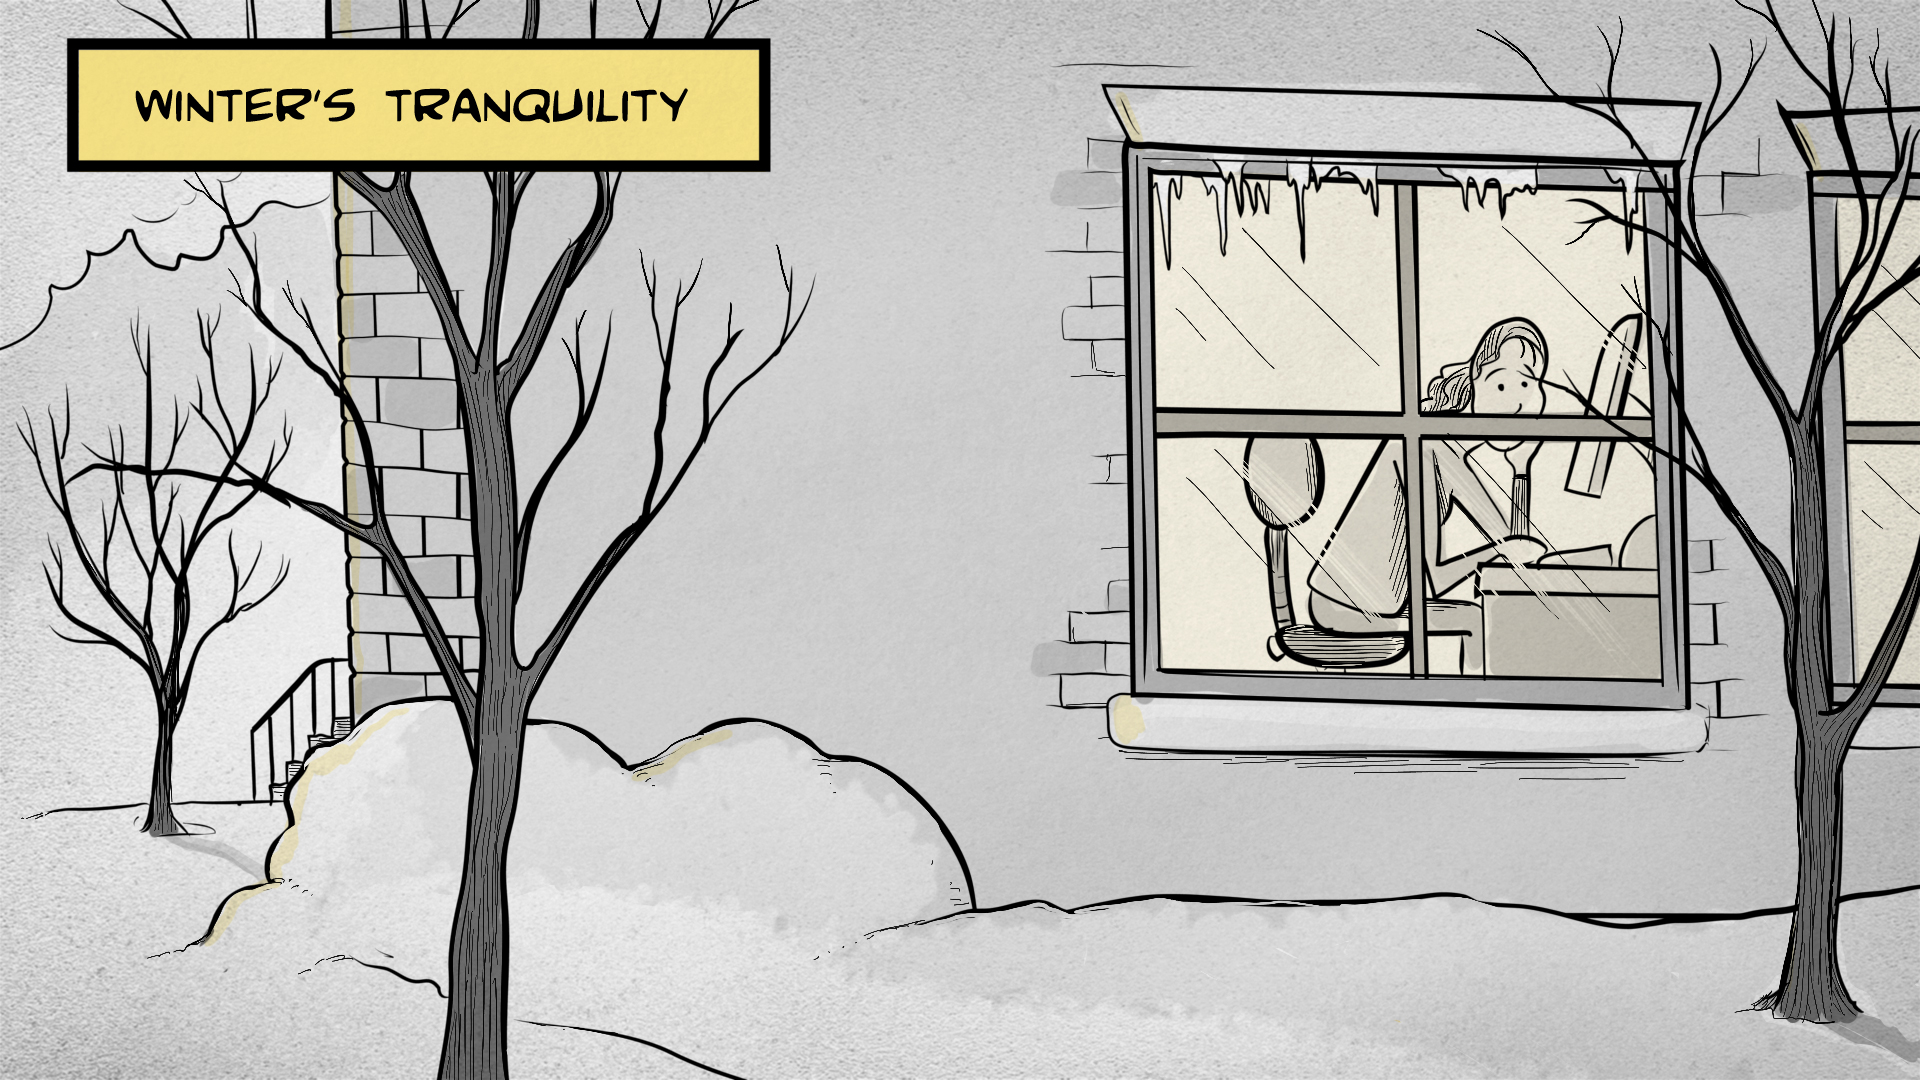 Winter's tranquility: Sasha is sitting at a desk behind a large window, gazing out at a winter scene with snow and bare trees.